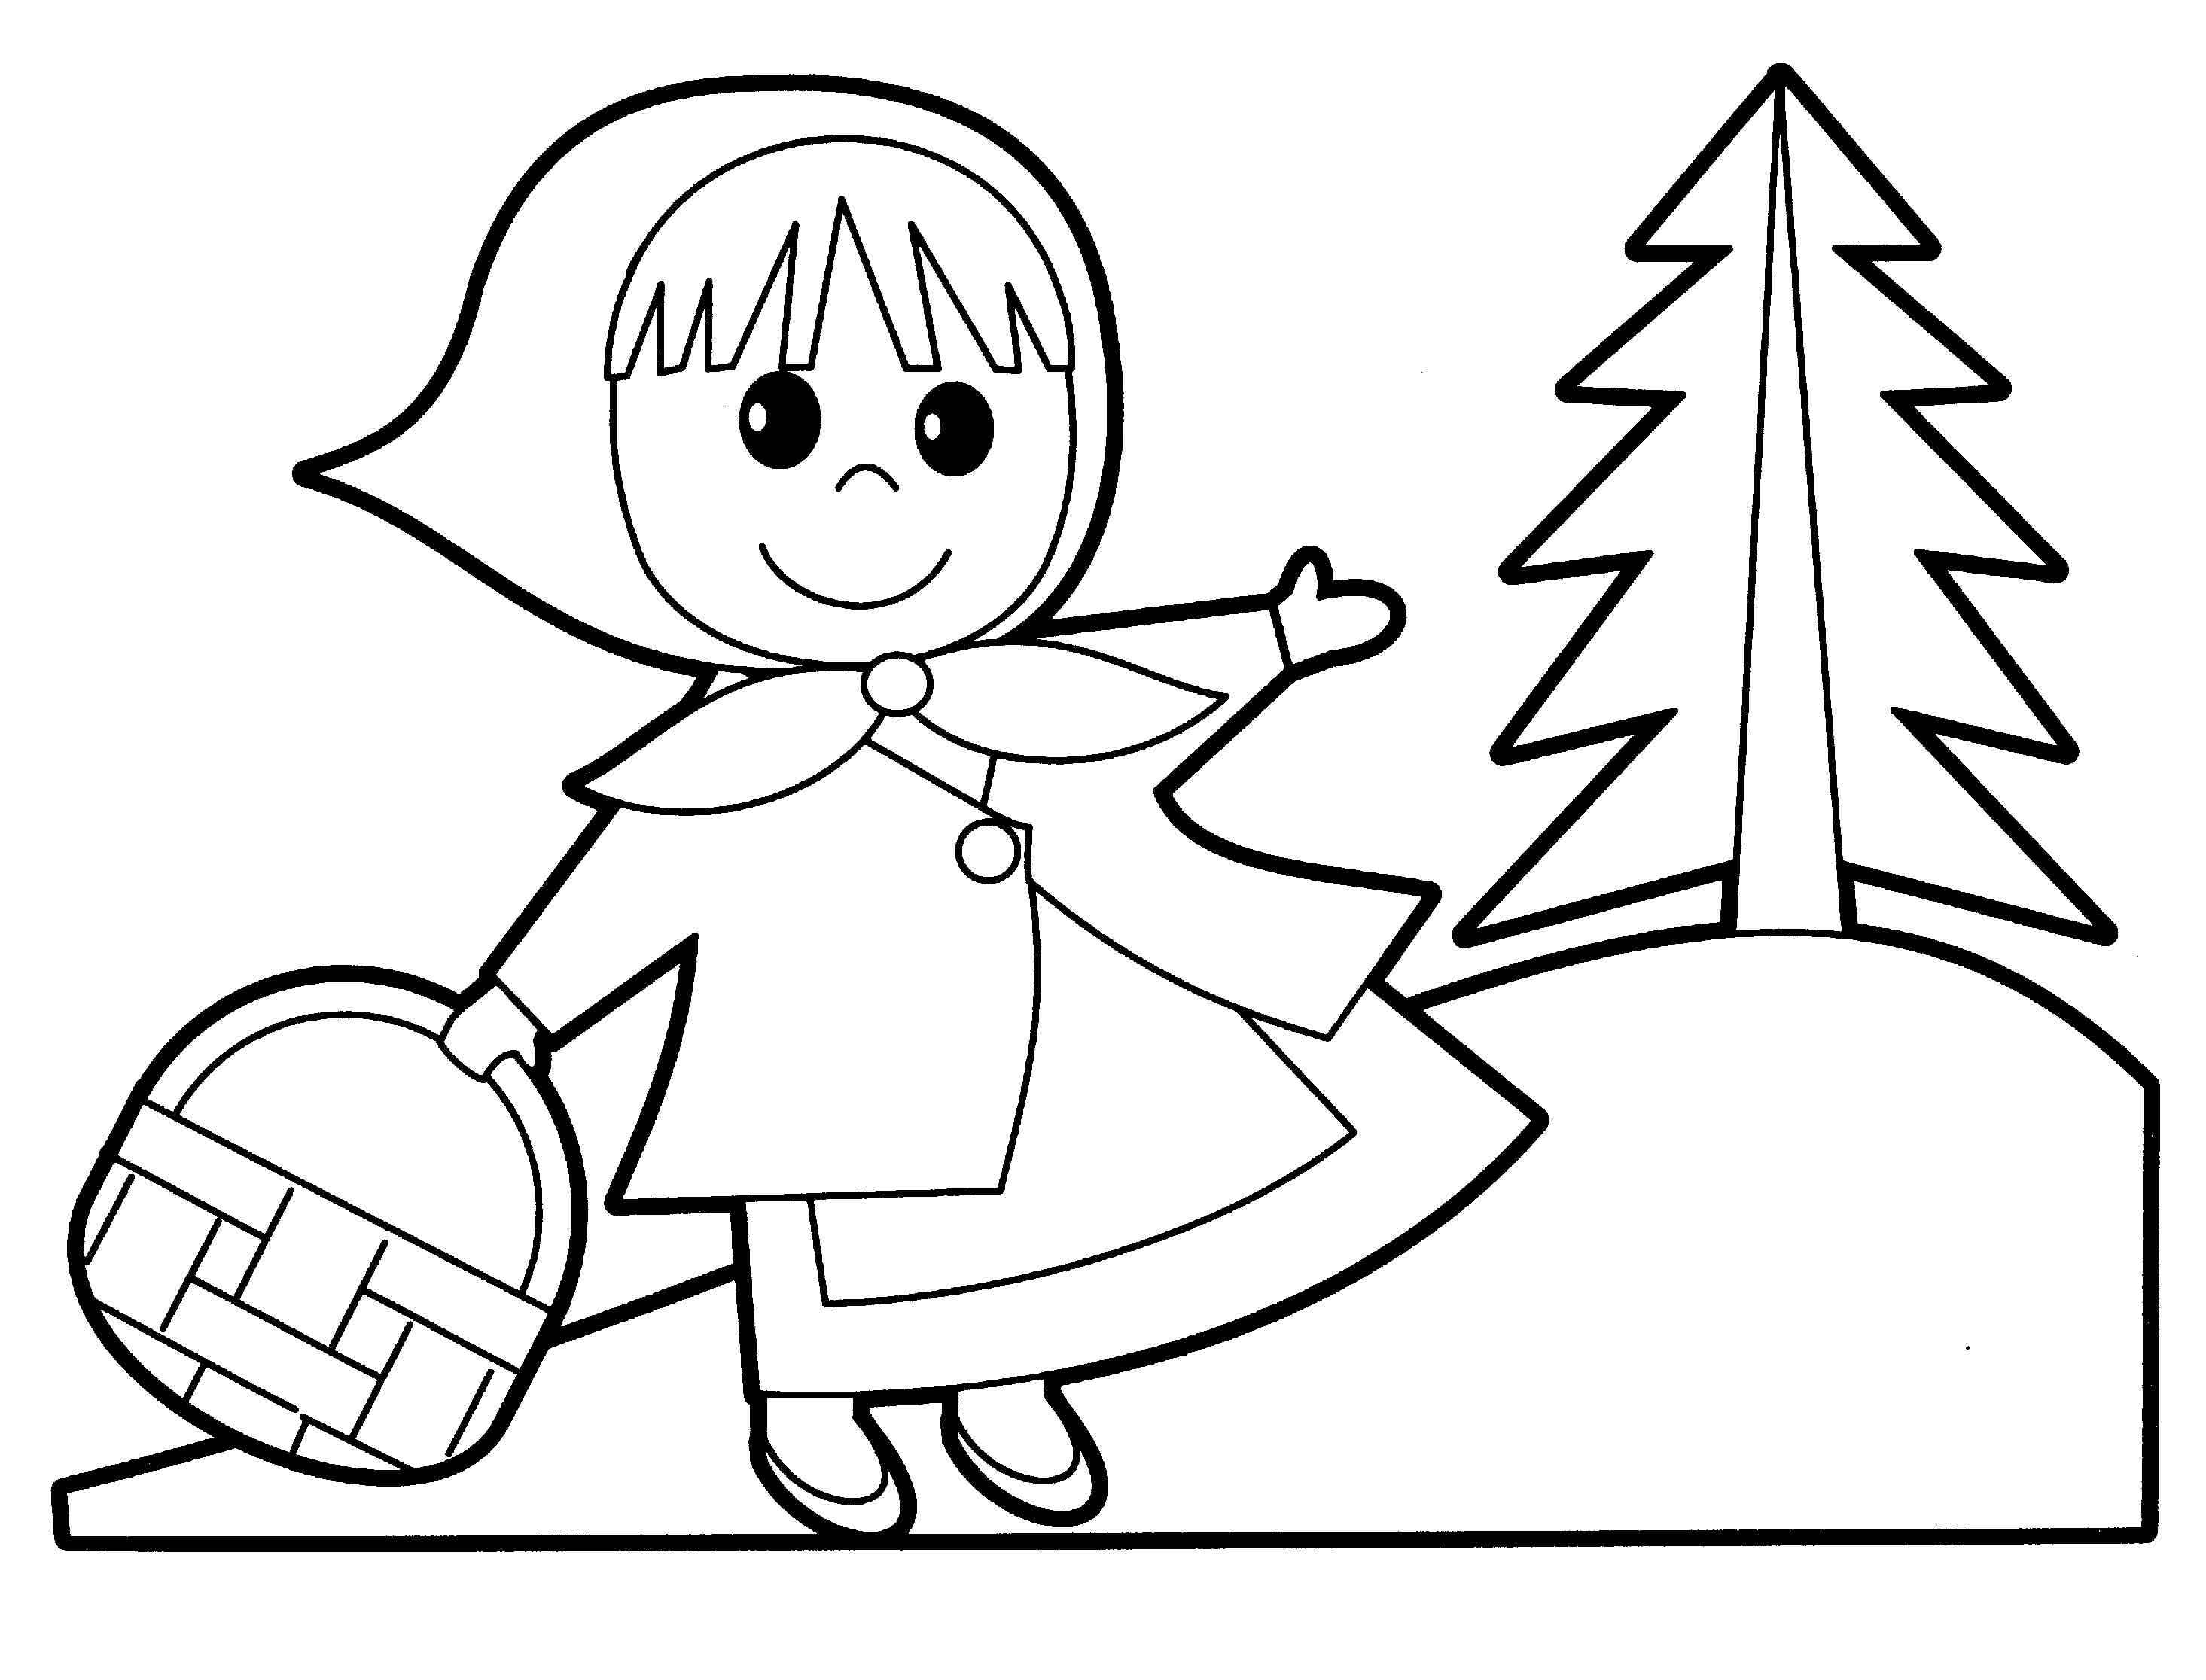 coloring pages of poeple - photo#16